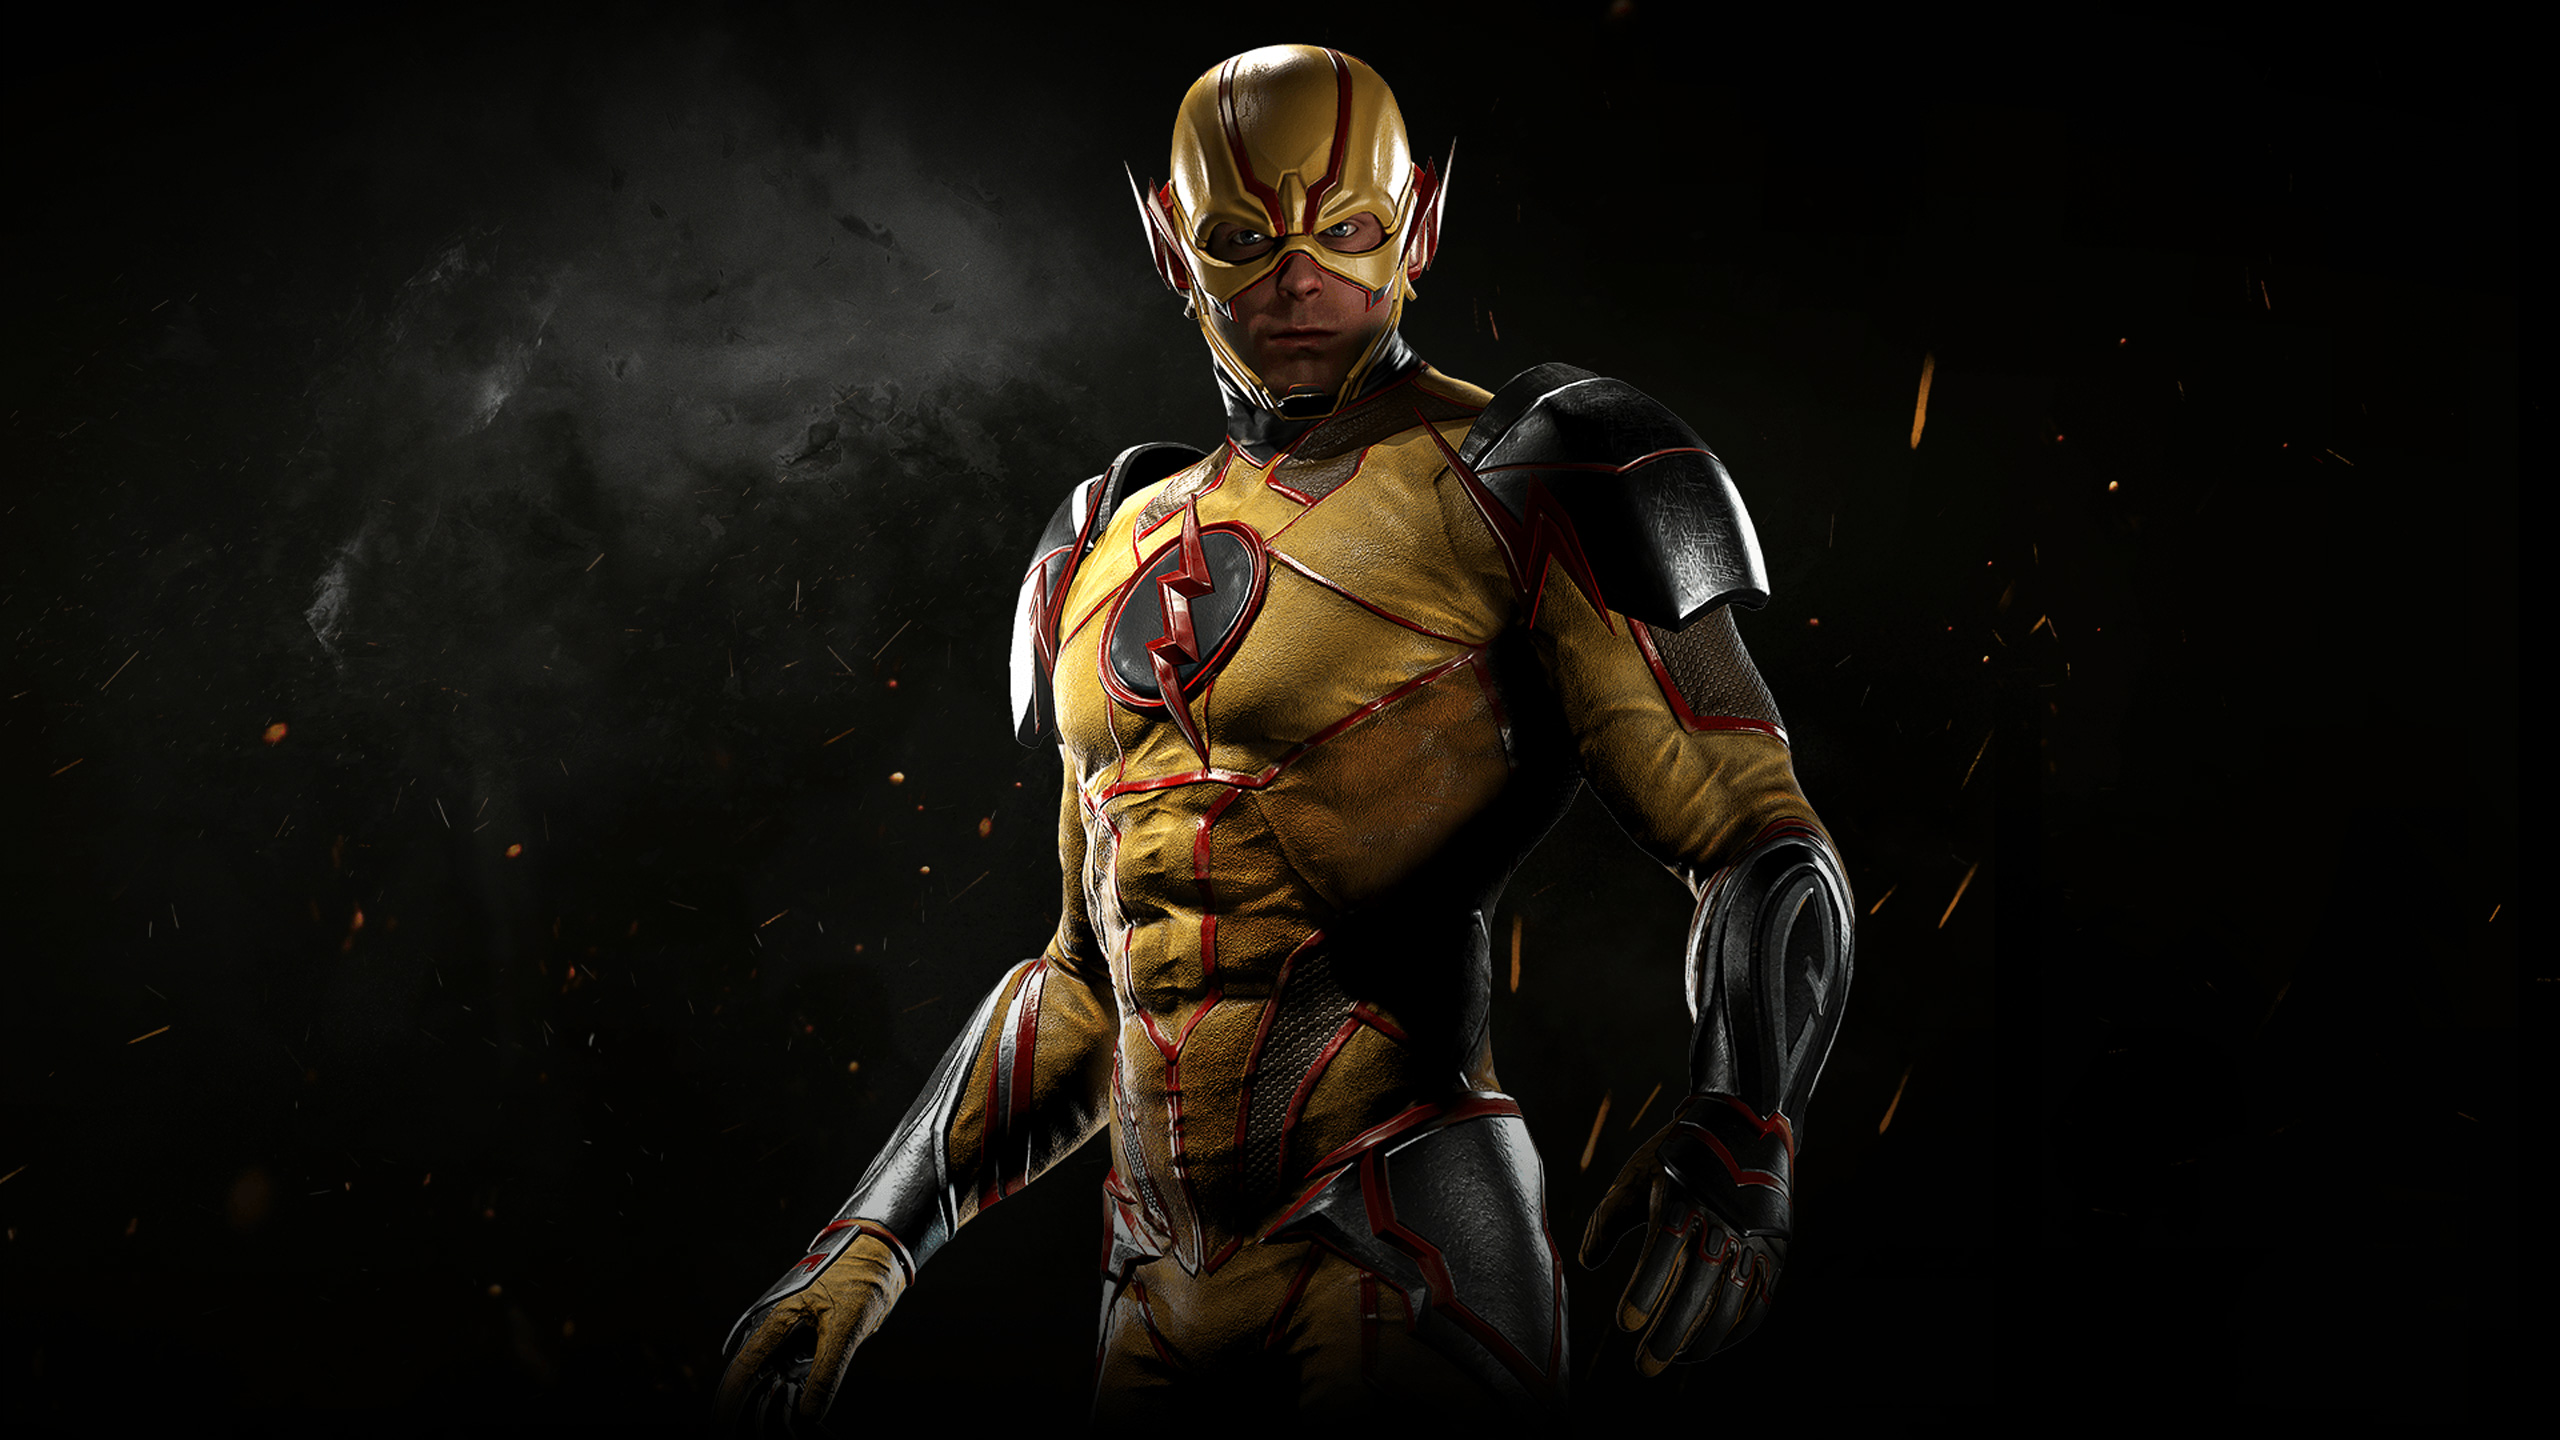 Injustice 2 Reverse Flash Hd Games 4k Wallpapers Images